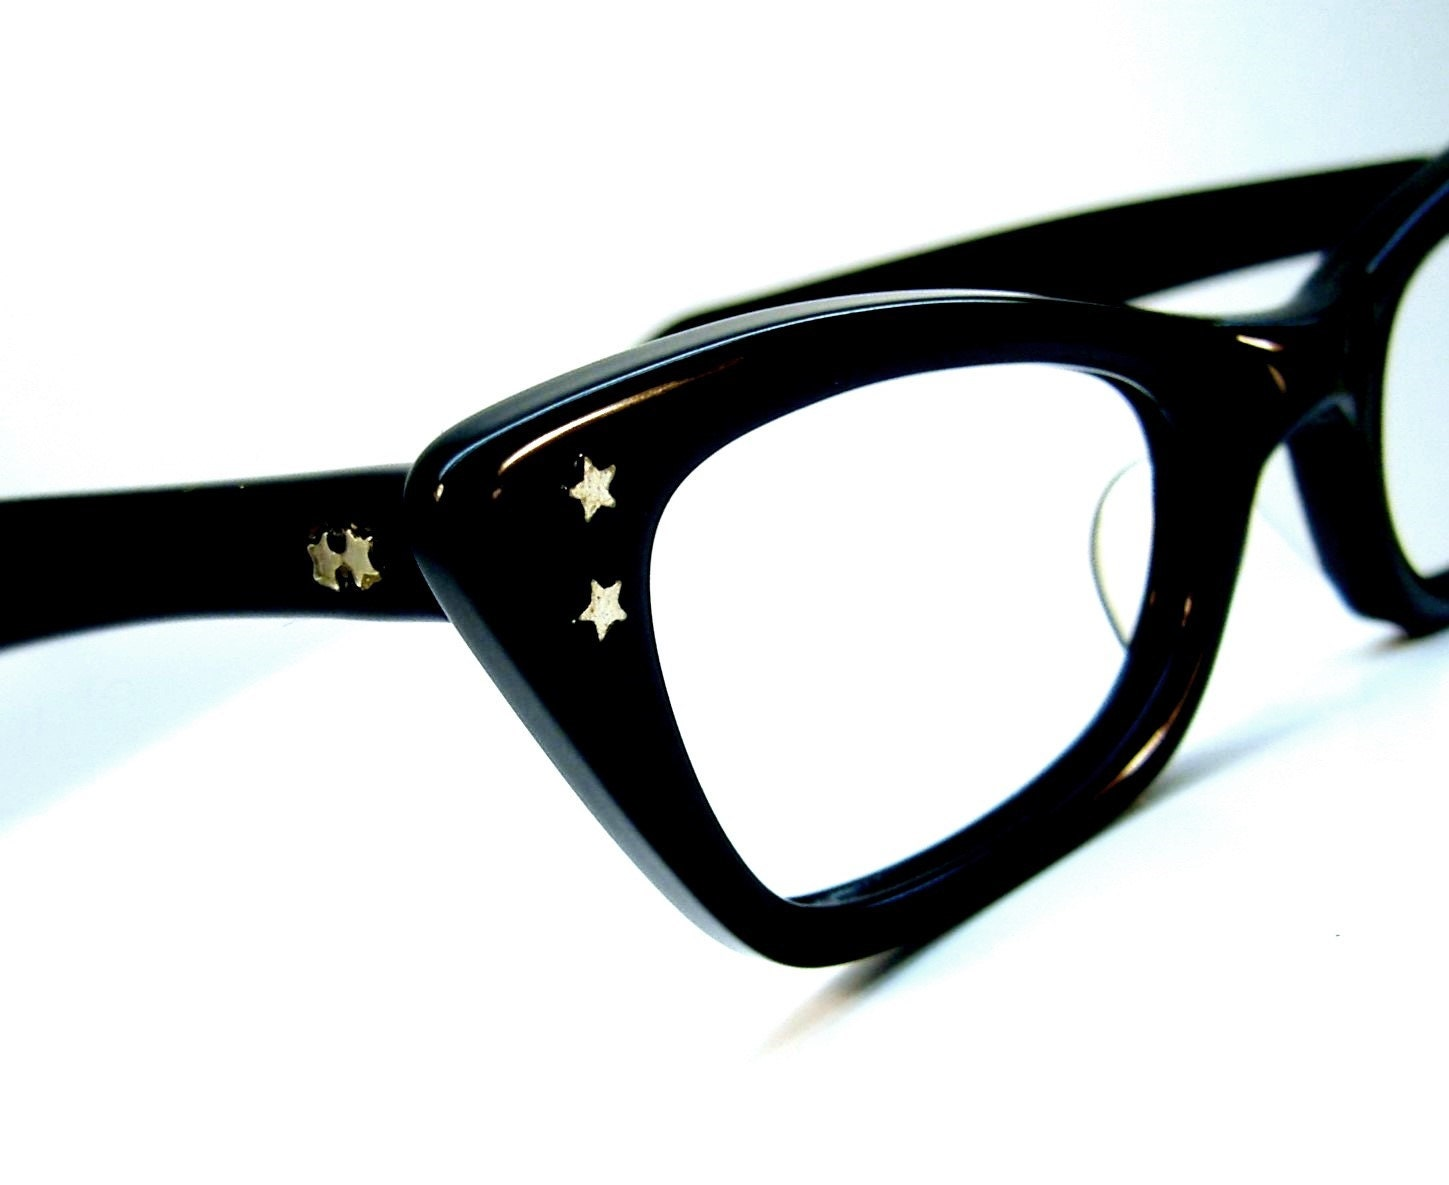 Eyeglass Frame Usa : Vintage Black Cateye Eyeglasses Eyewear Frame USA